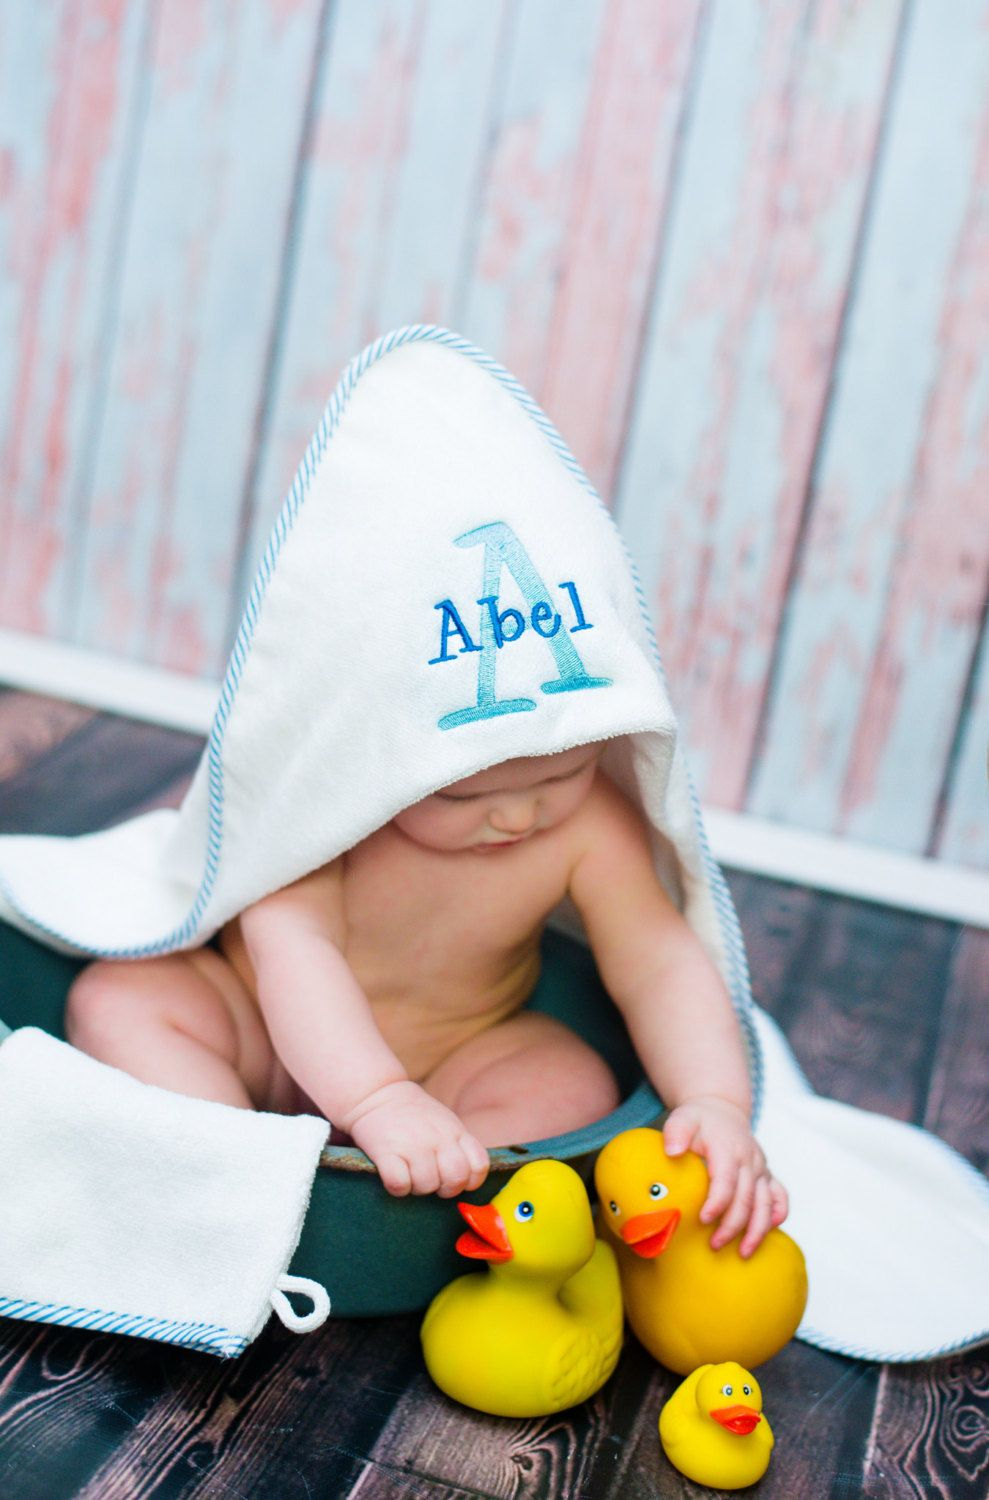 Baby bath robe hooded baby towel personalized baby washcloth set new to jennifernoeldesigns on etsy personalized infant hooded towel and mitt set newborn gift baby bath towel personalized towel monogrammed towel 3700 negle Image collections